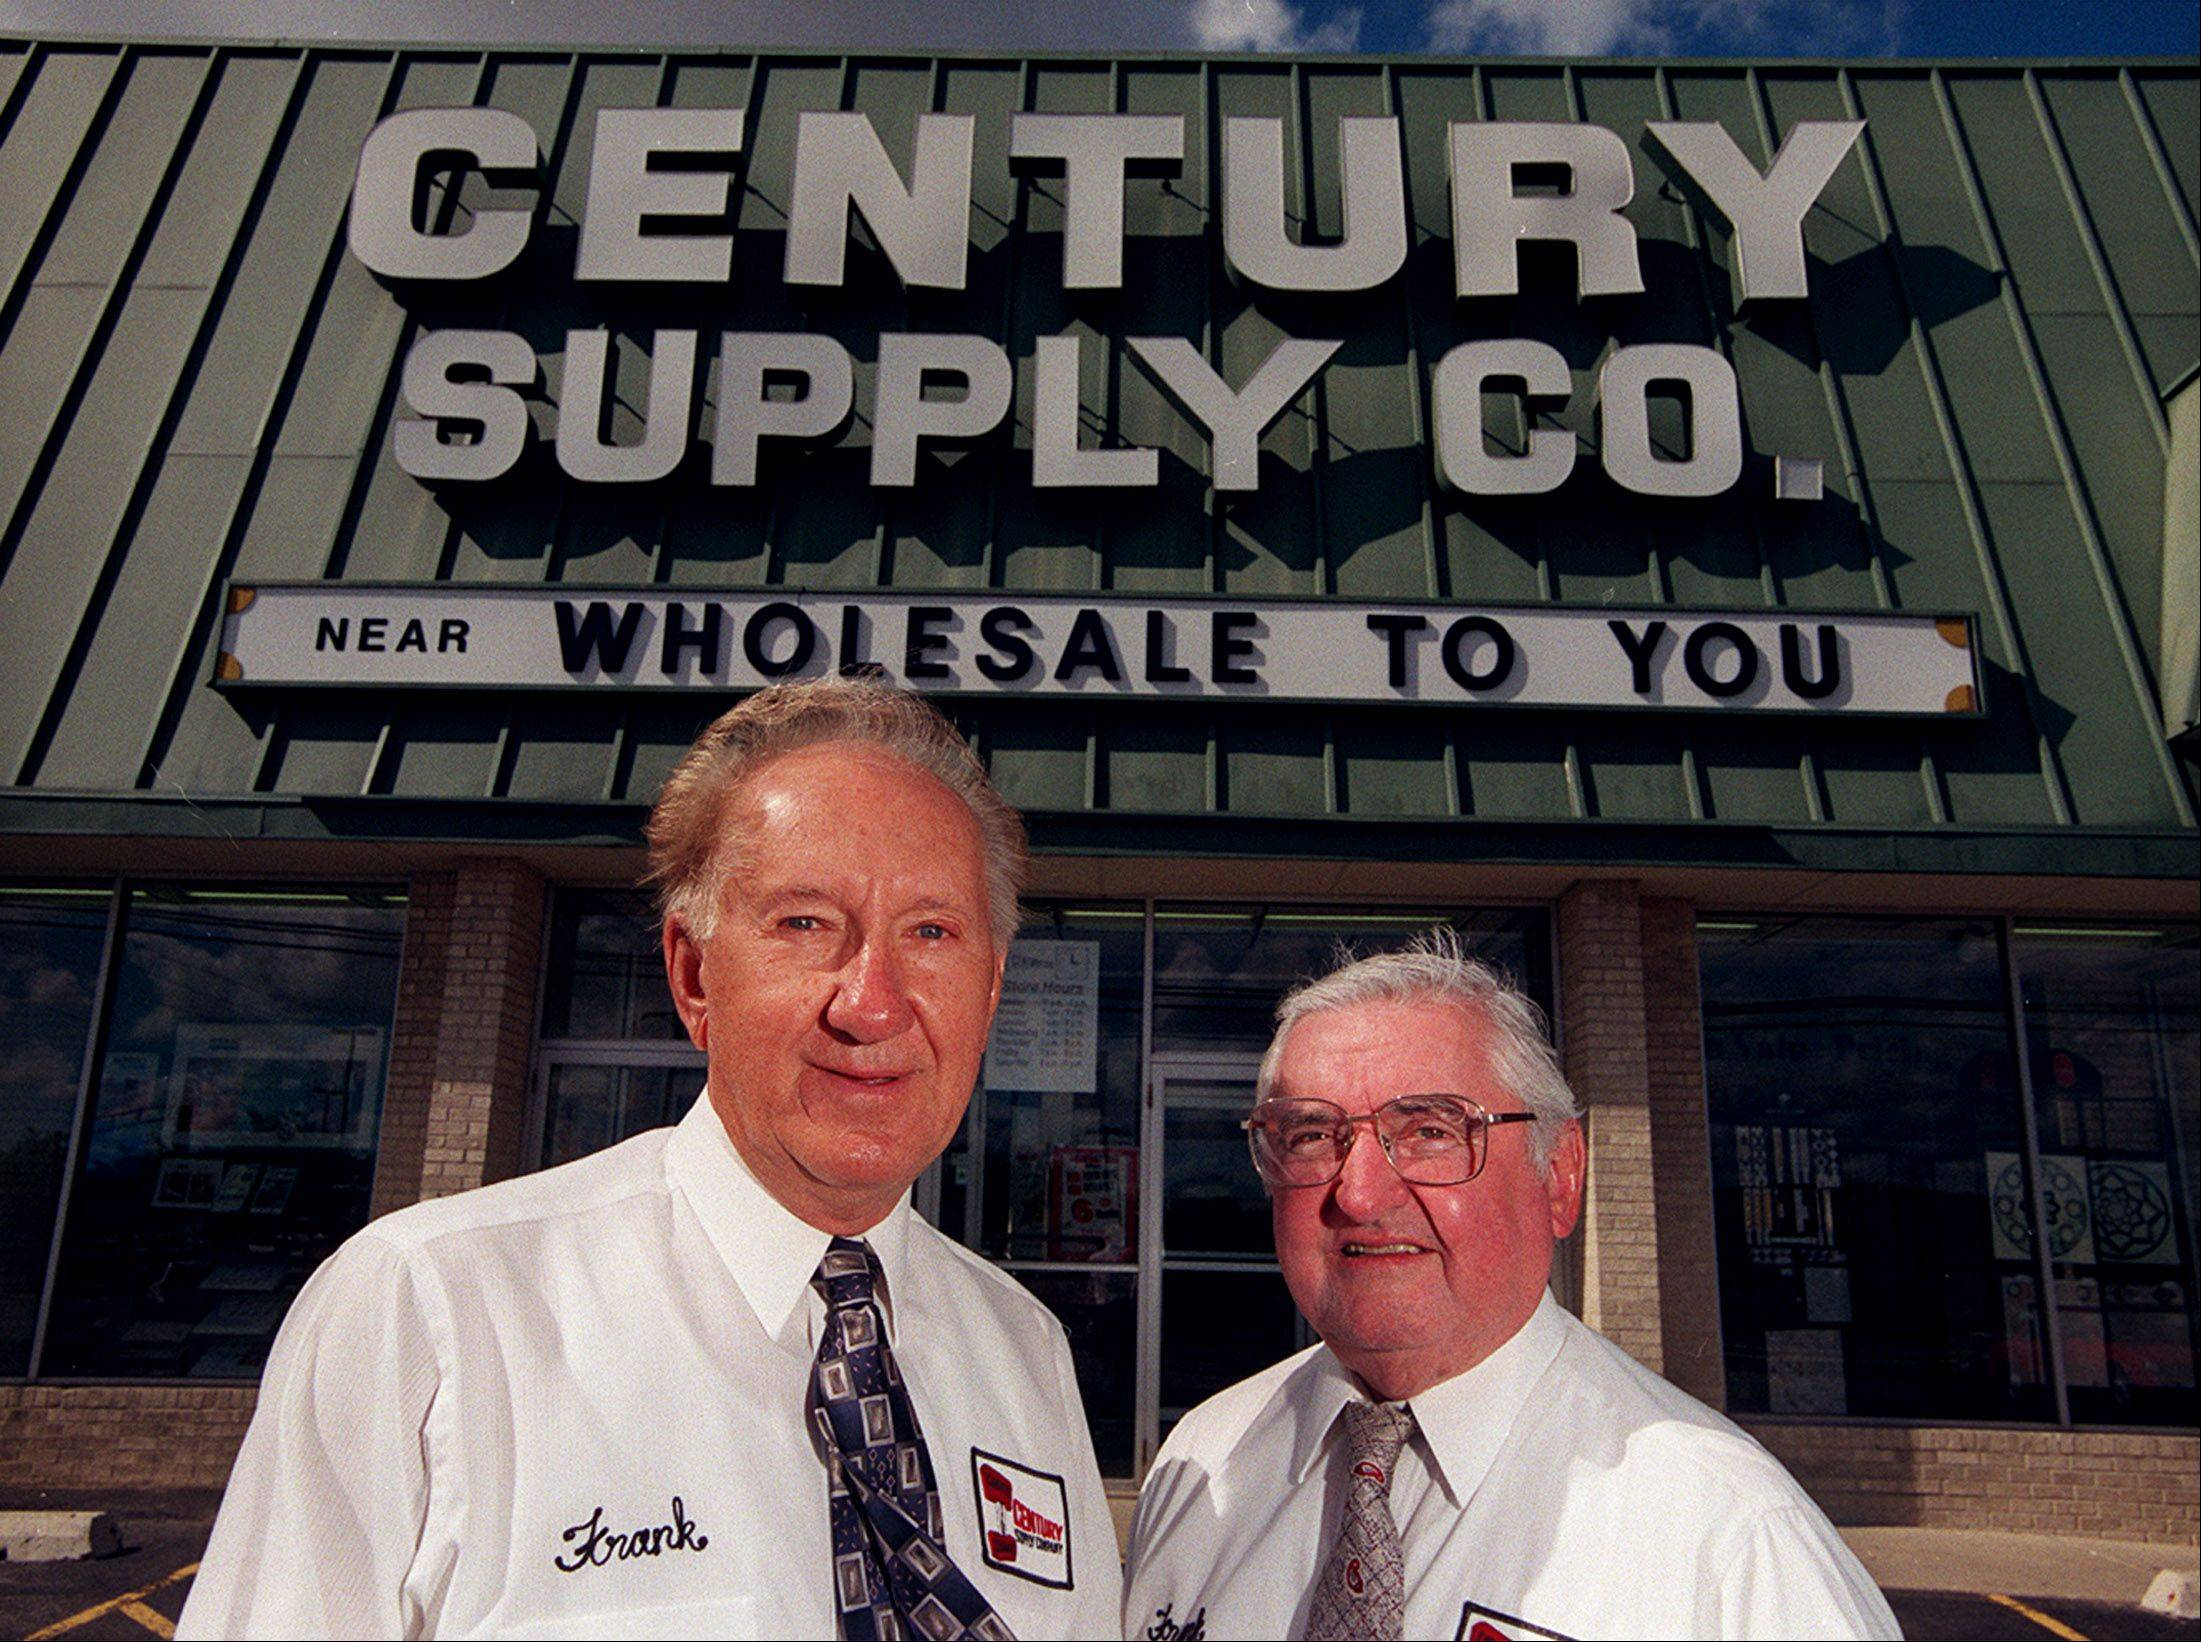 Century Tile and Supply Co. founders Frank Parks Sr., left, and Paul Spiewak in a 2002 photo.